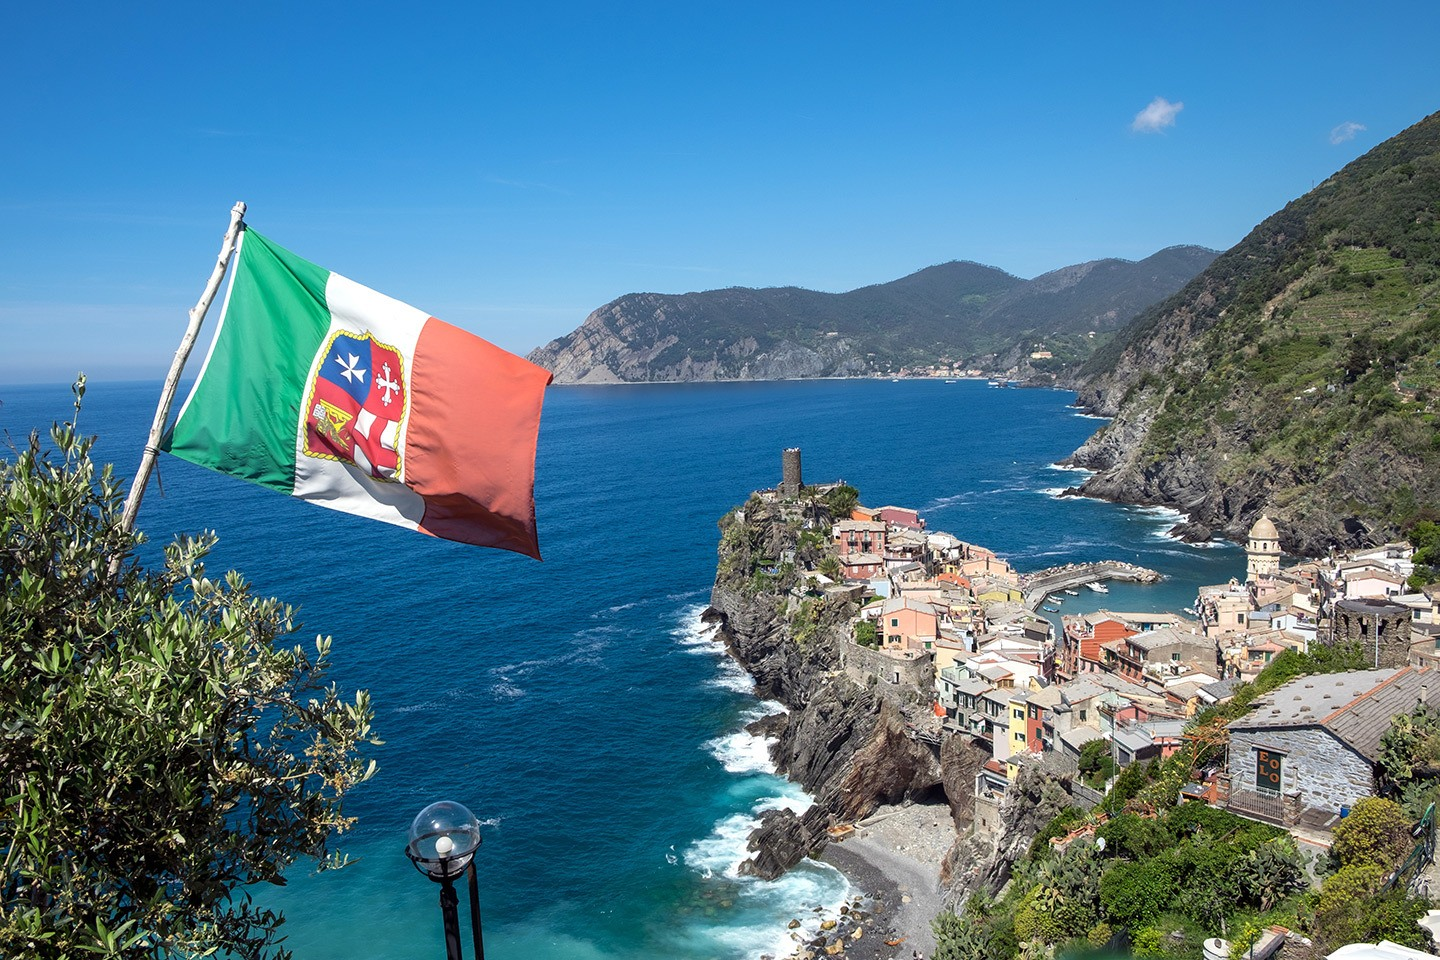 Beautiful Vernazza from the cliff path with a flag blowing in the wind